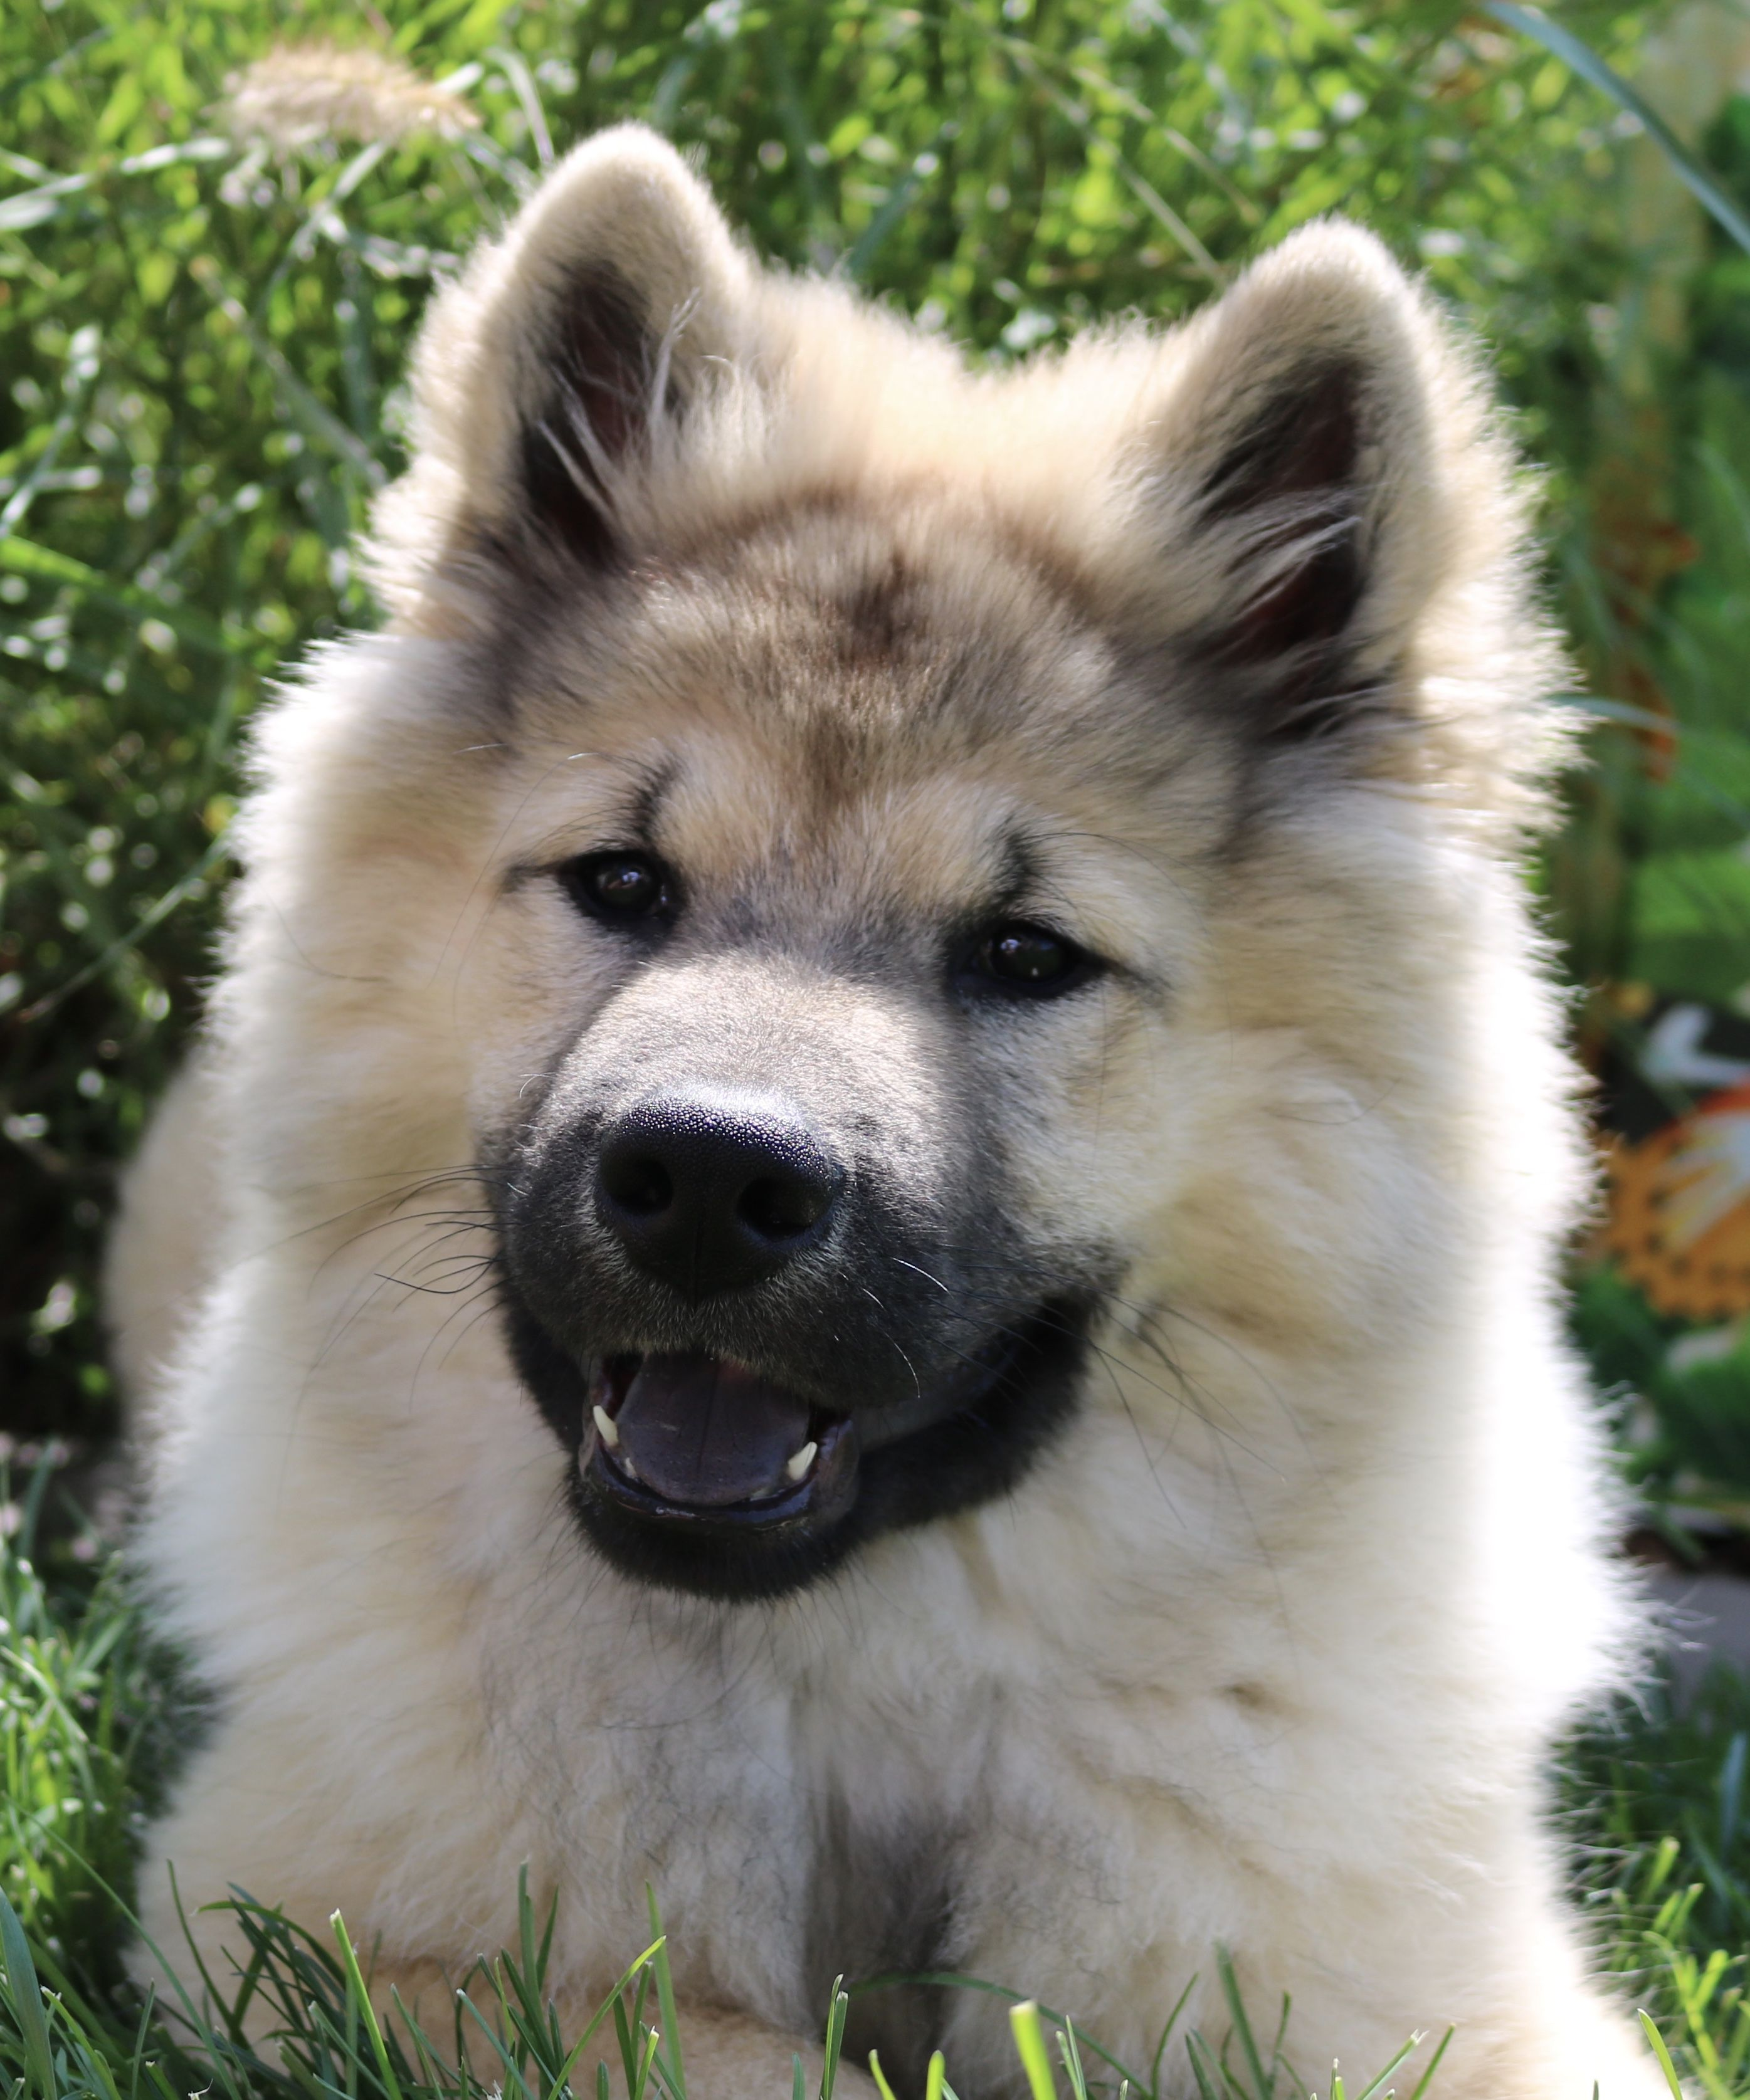 Pin By Kimm Lisk On Dogs I Want Cute Dogs And Puppies Cute Fluffy Puppies Cuddly Animals